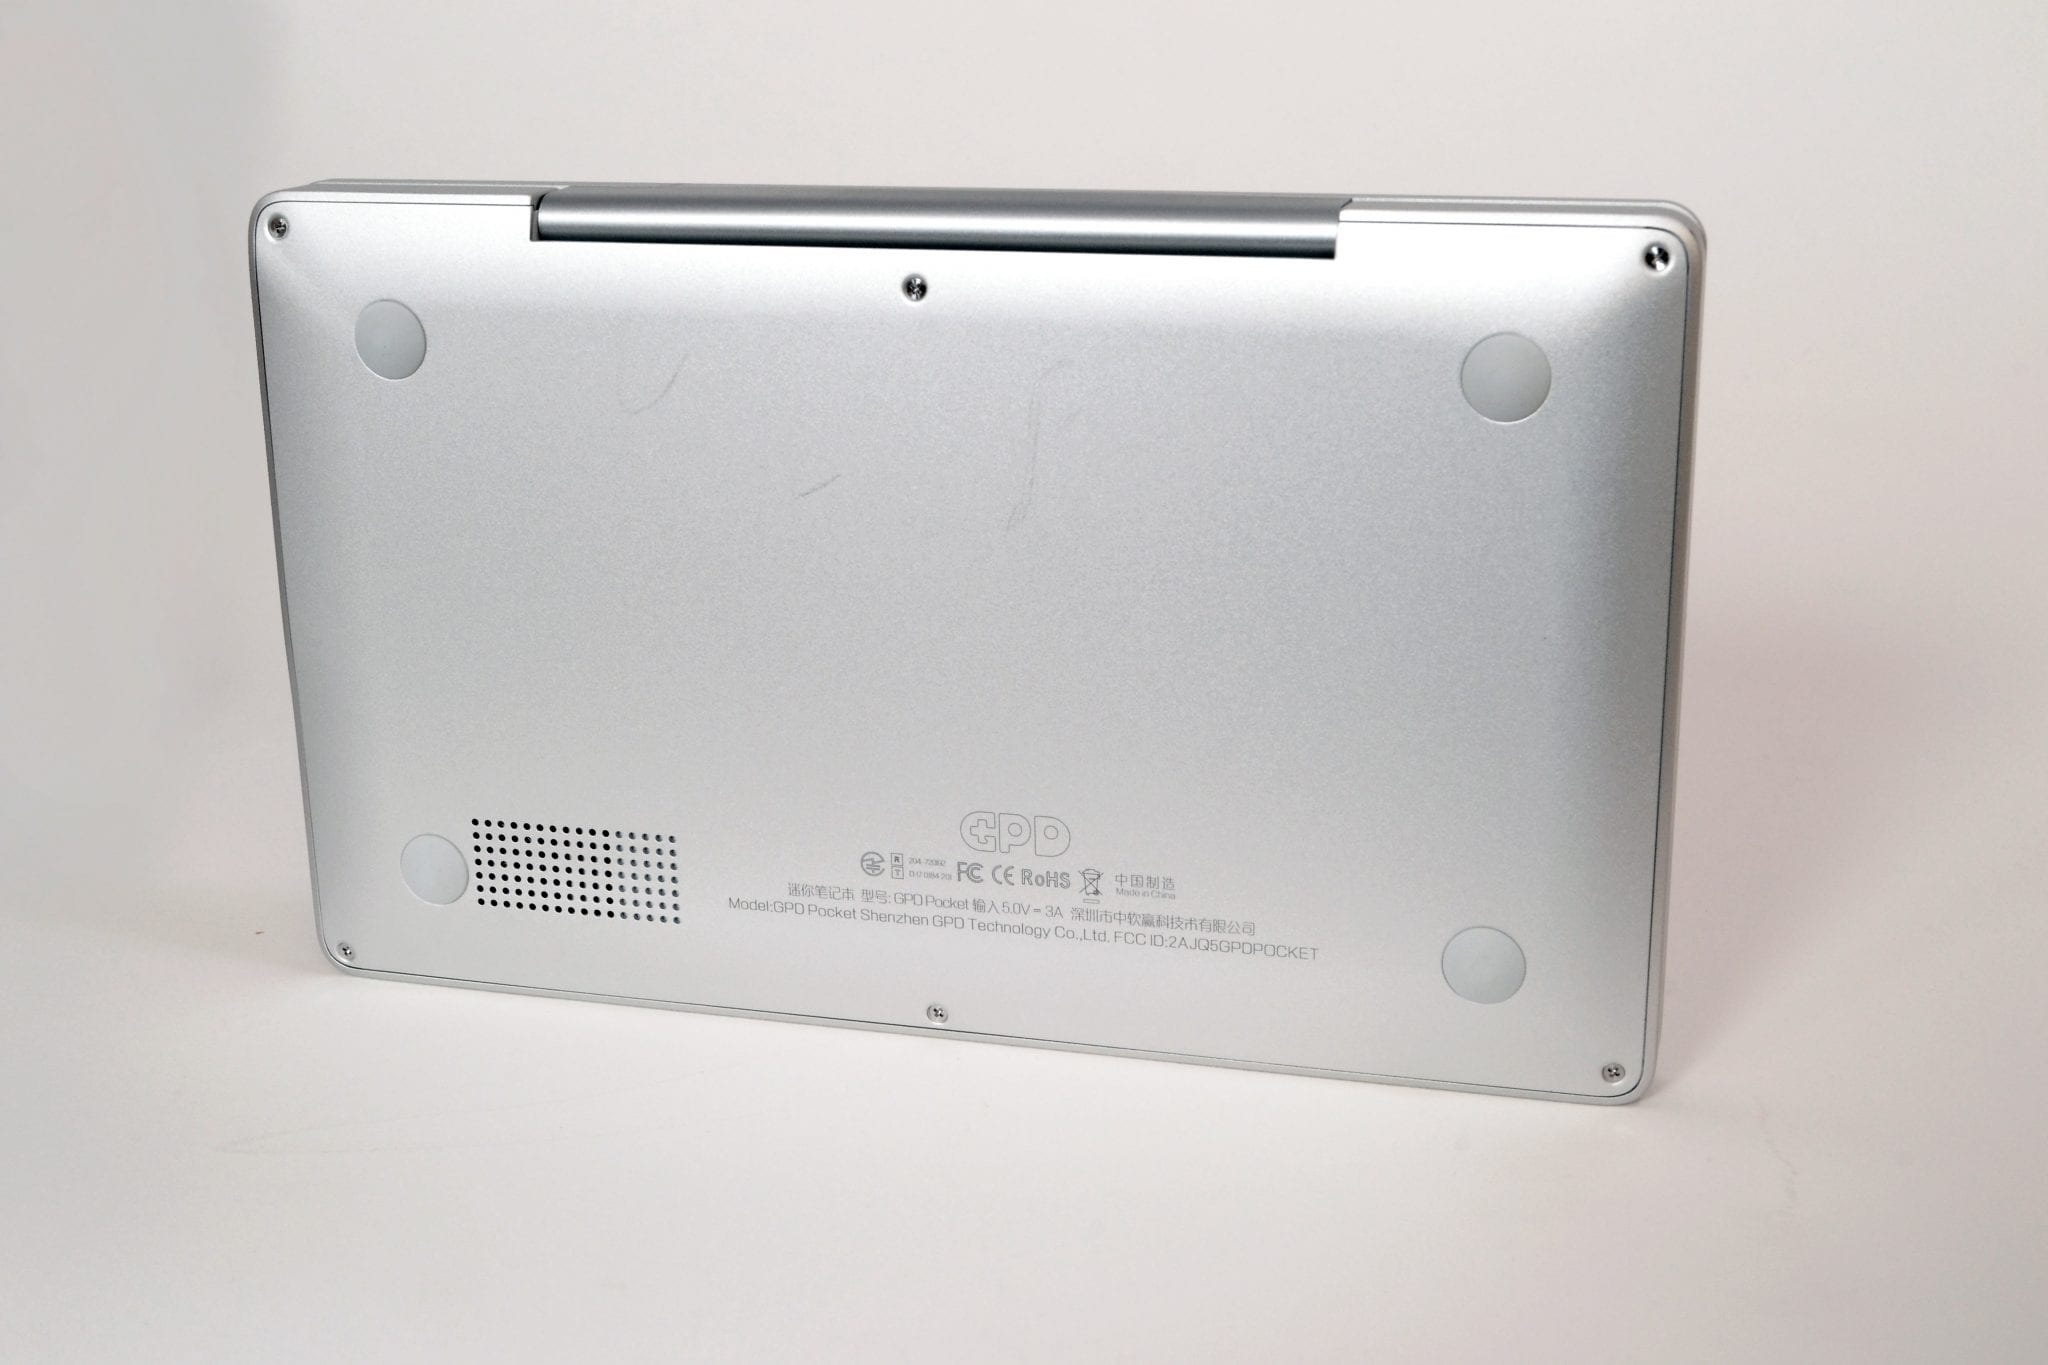 GPD Pocket Mini PC back view